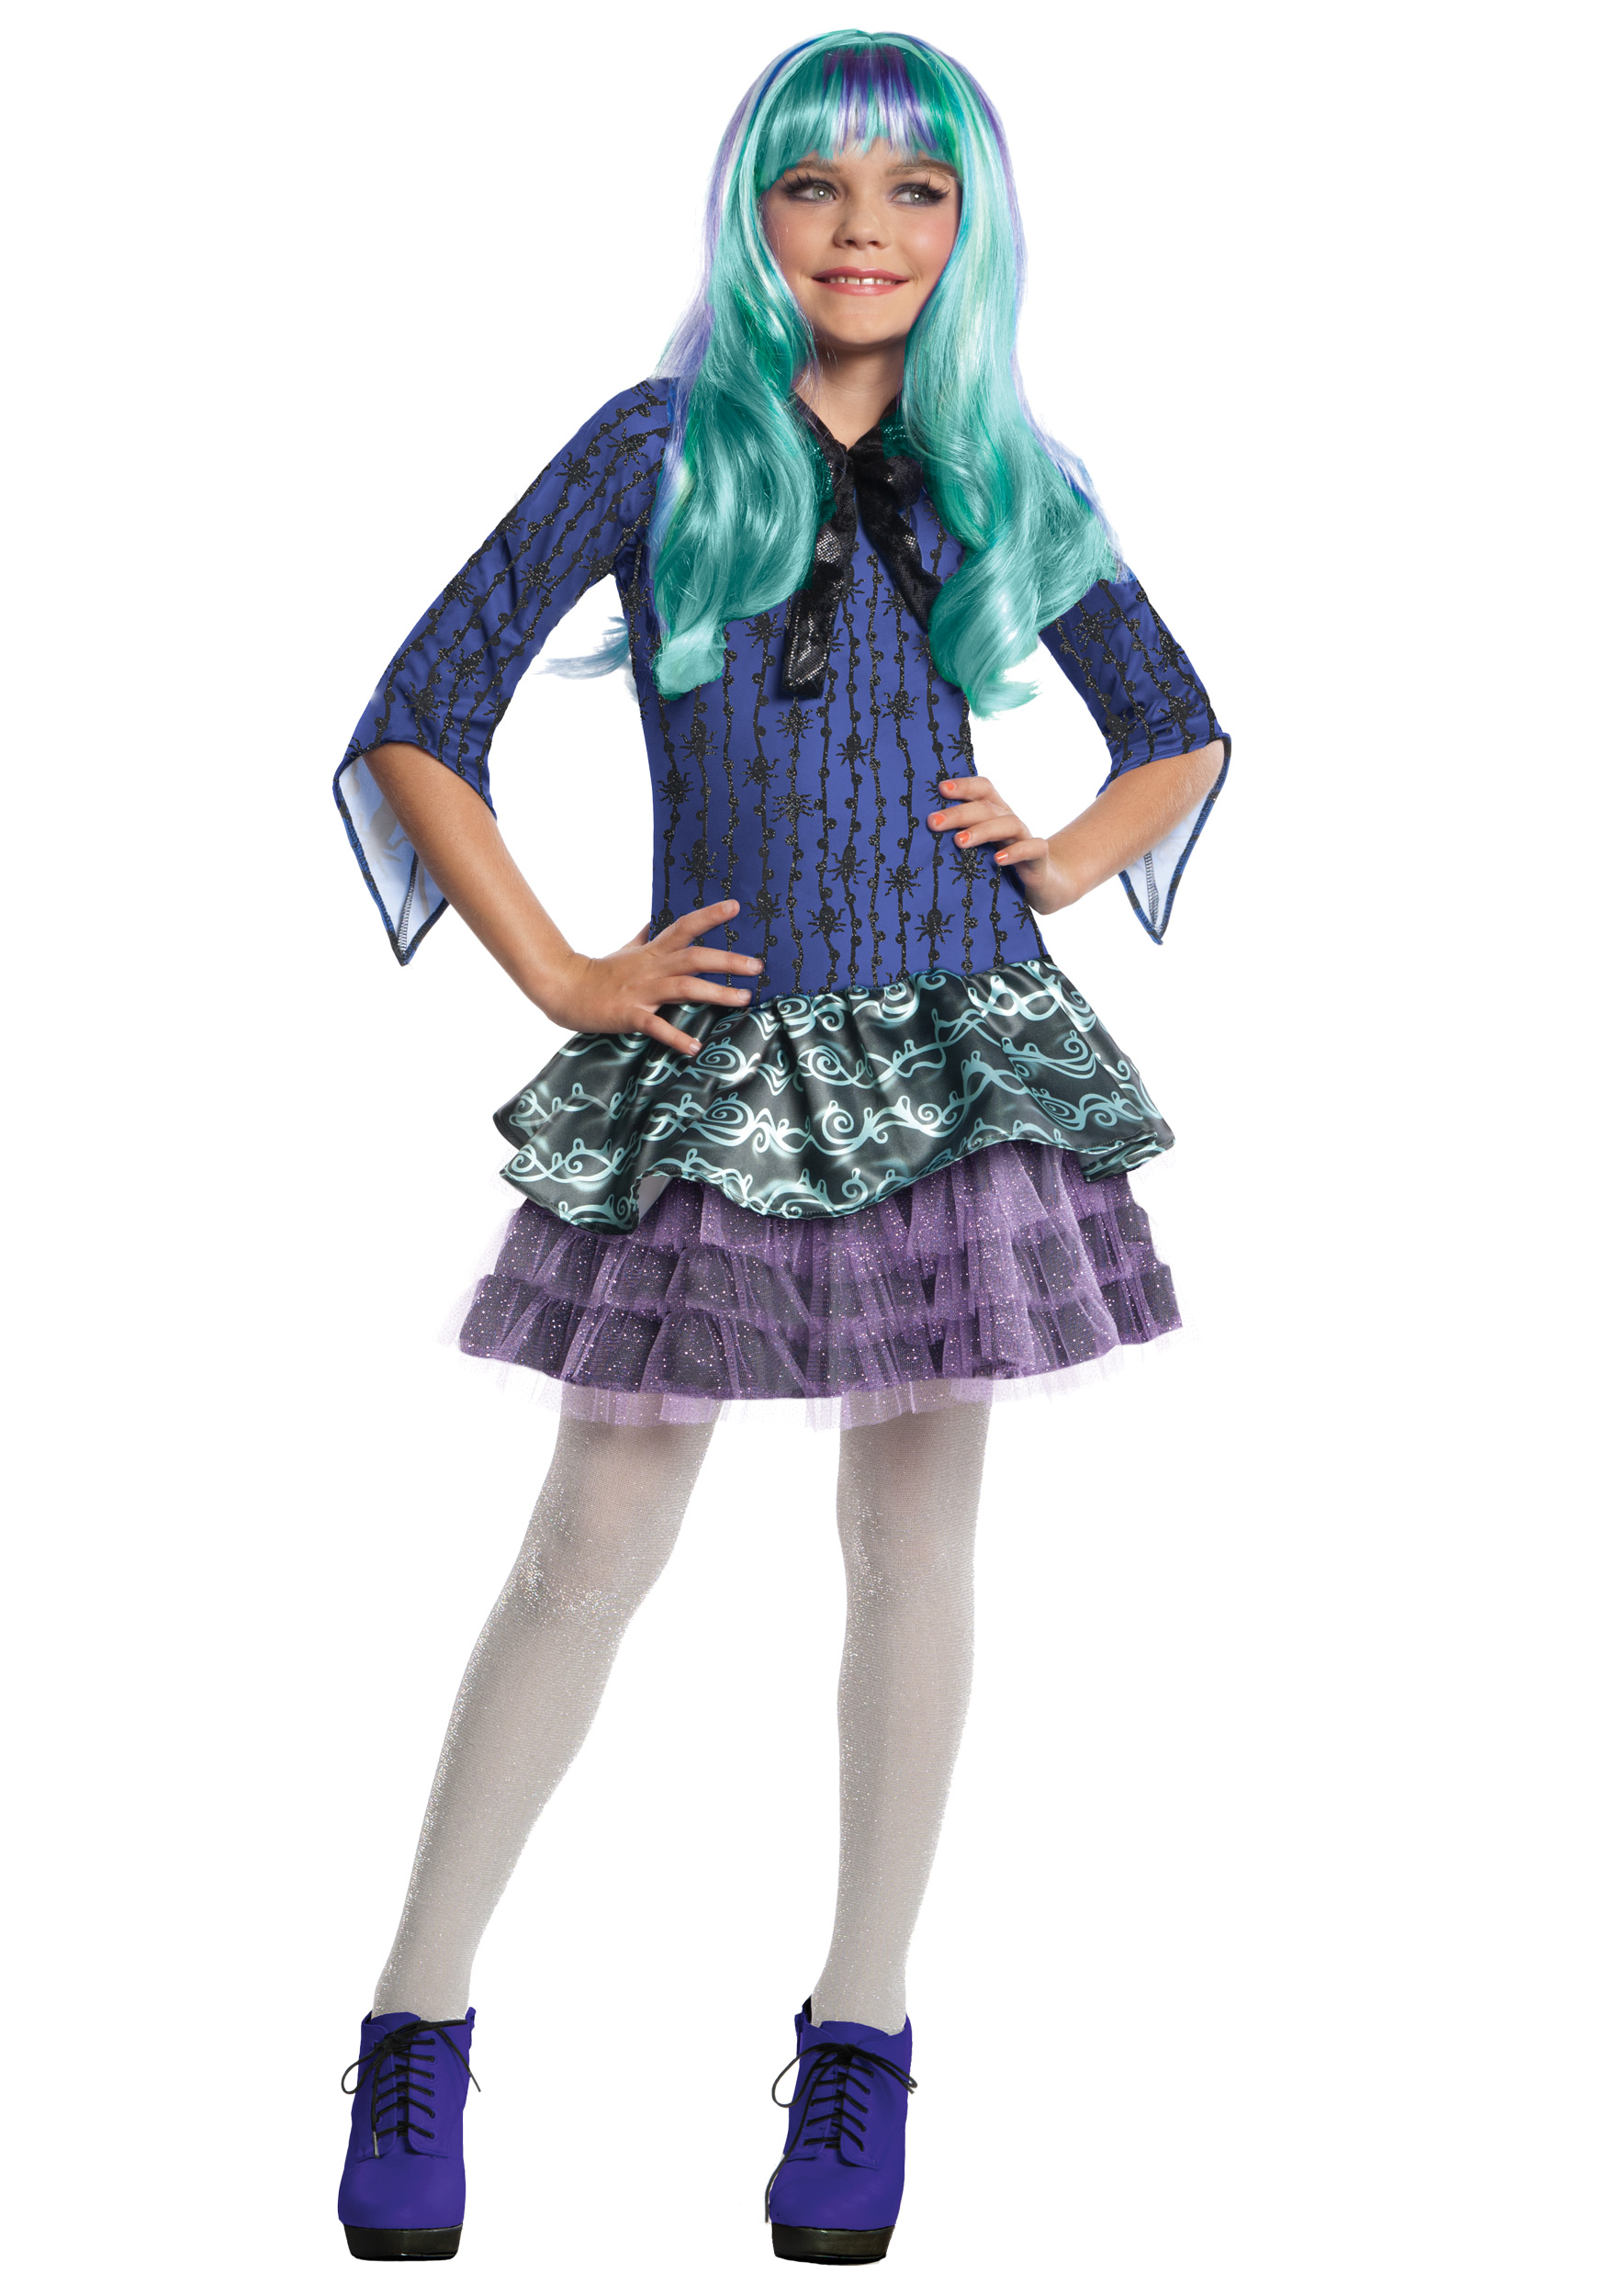 Monster High Doll Costumes For Kids - Best Kids Costumes